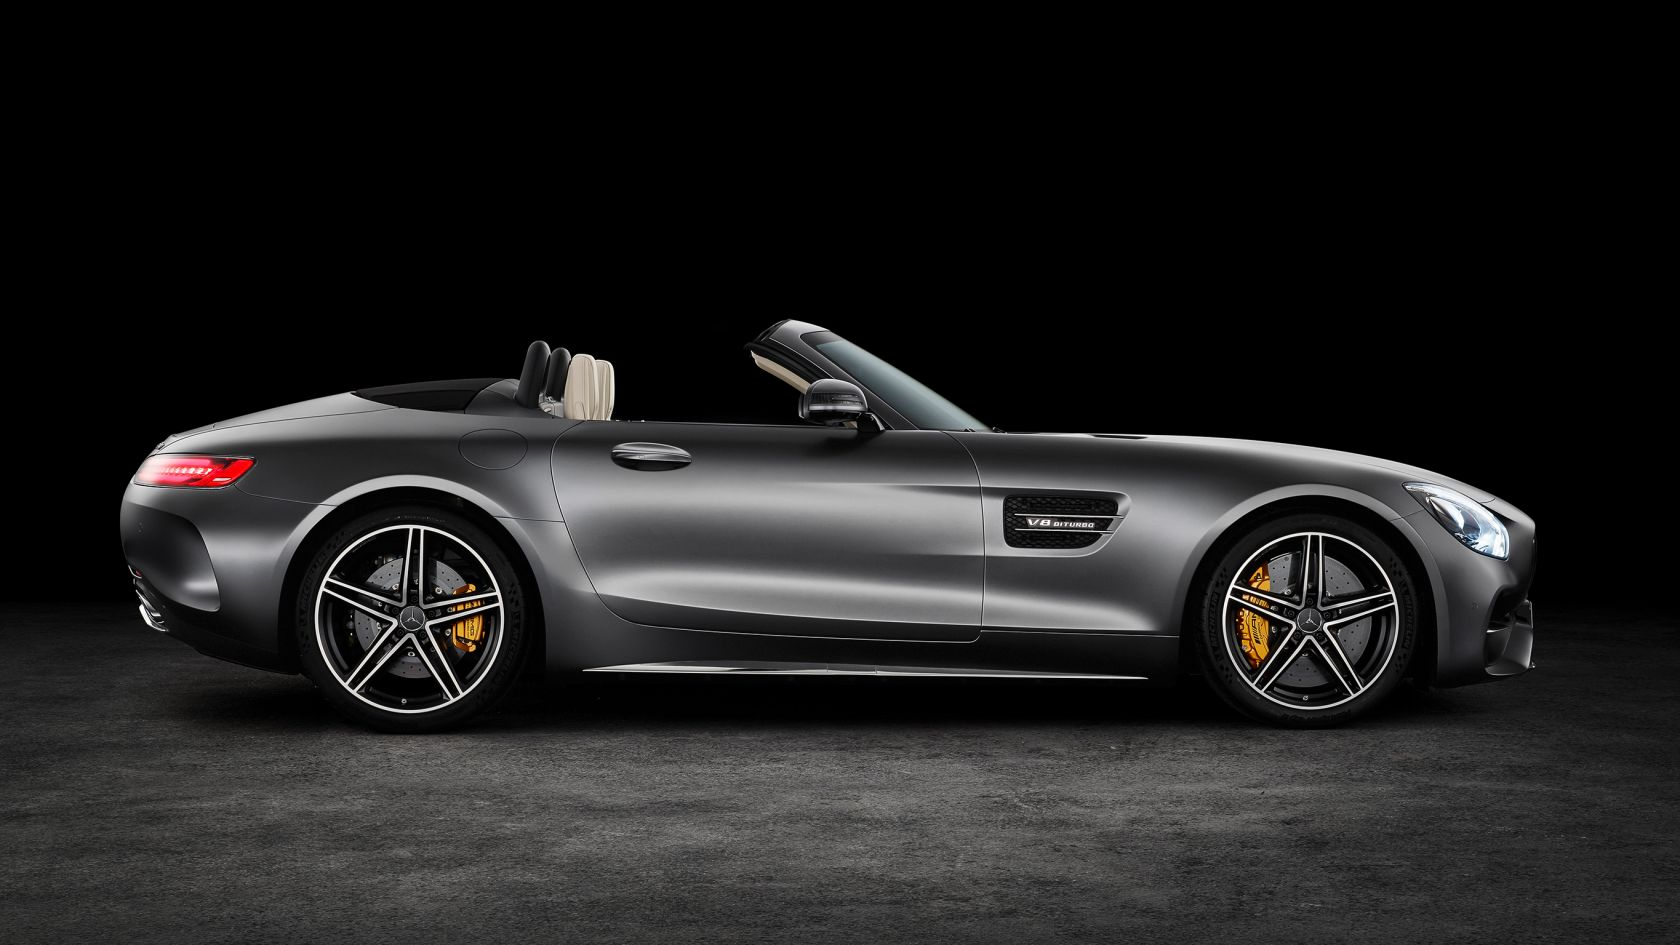 Mercedes Amg Gt Roadster Inspiracao